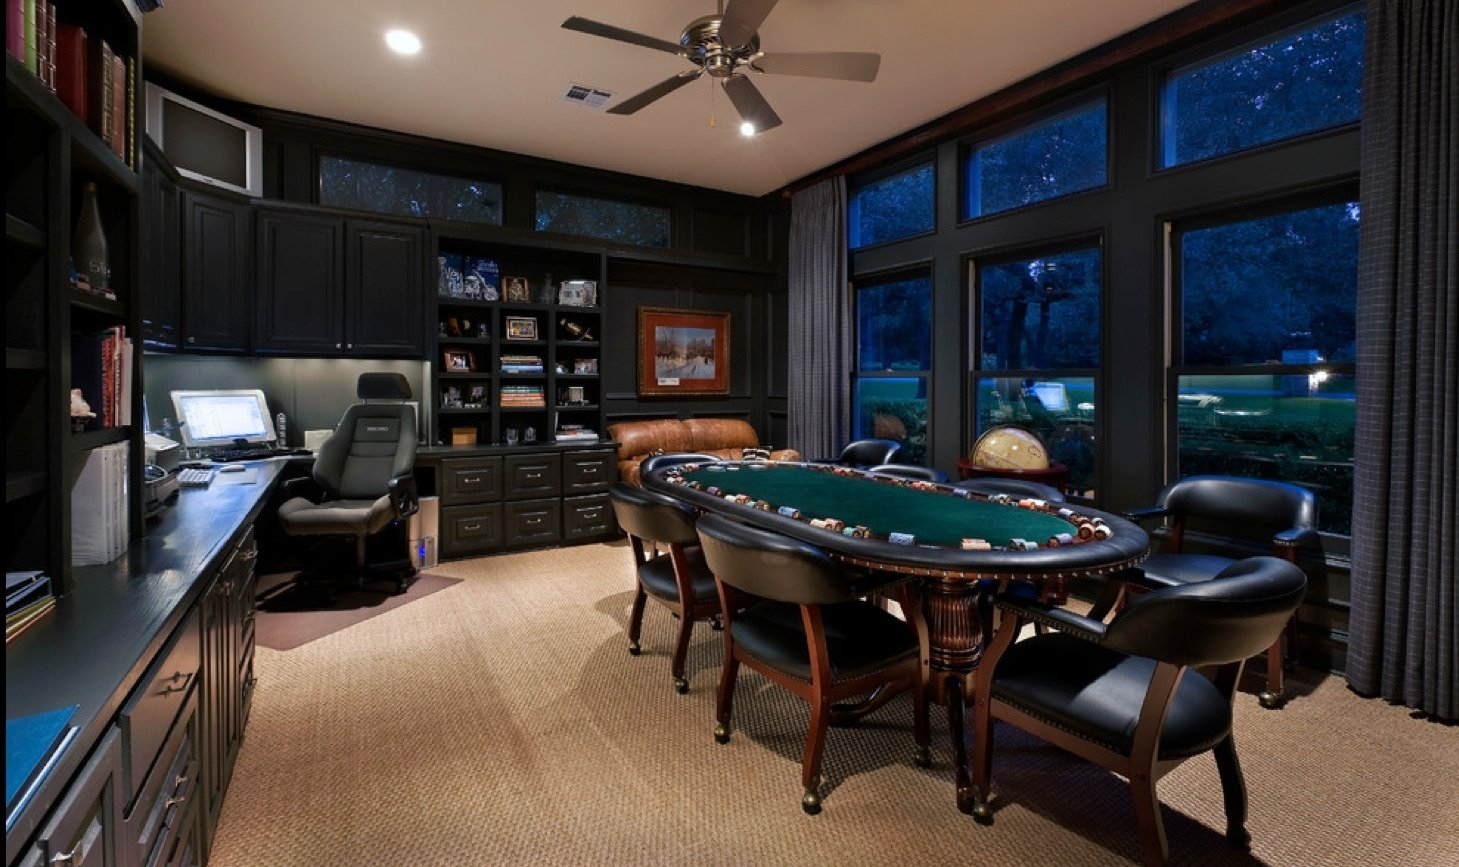 10 Perfect Game Room Ideas For Men 50 best man cave ideas and designs for 2017 decorating a man cave on 2020